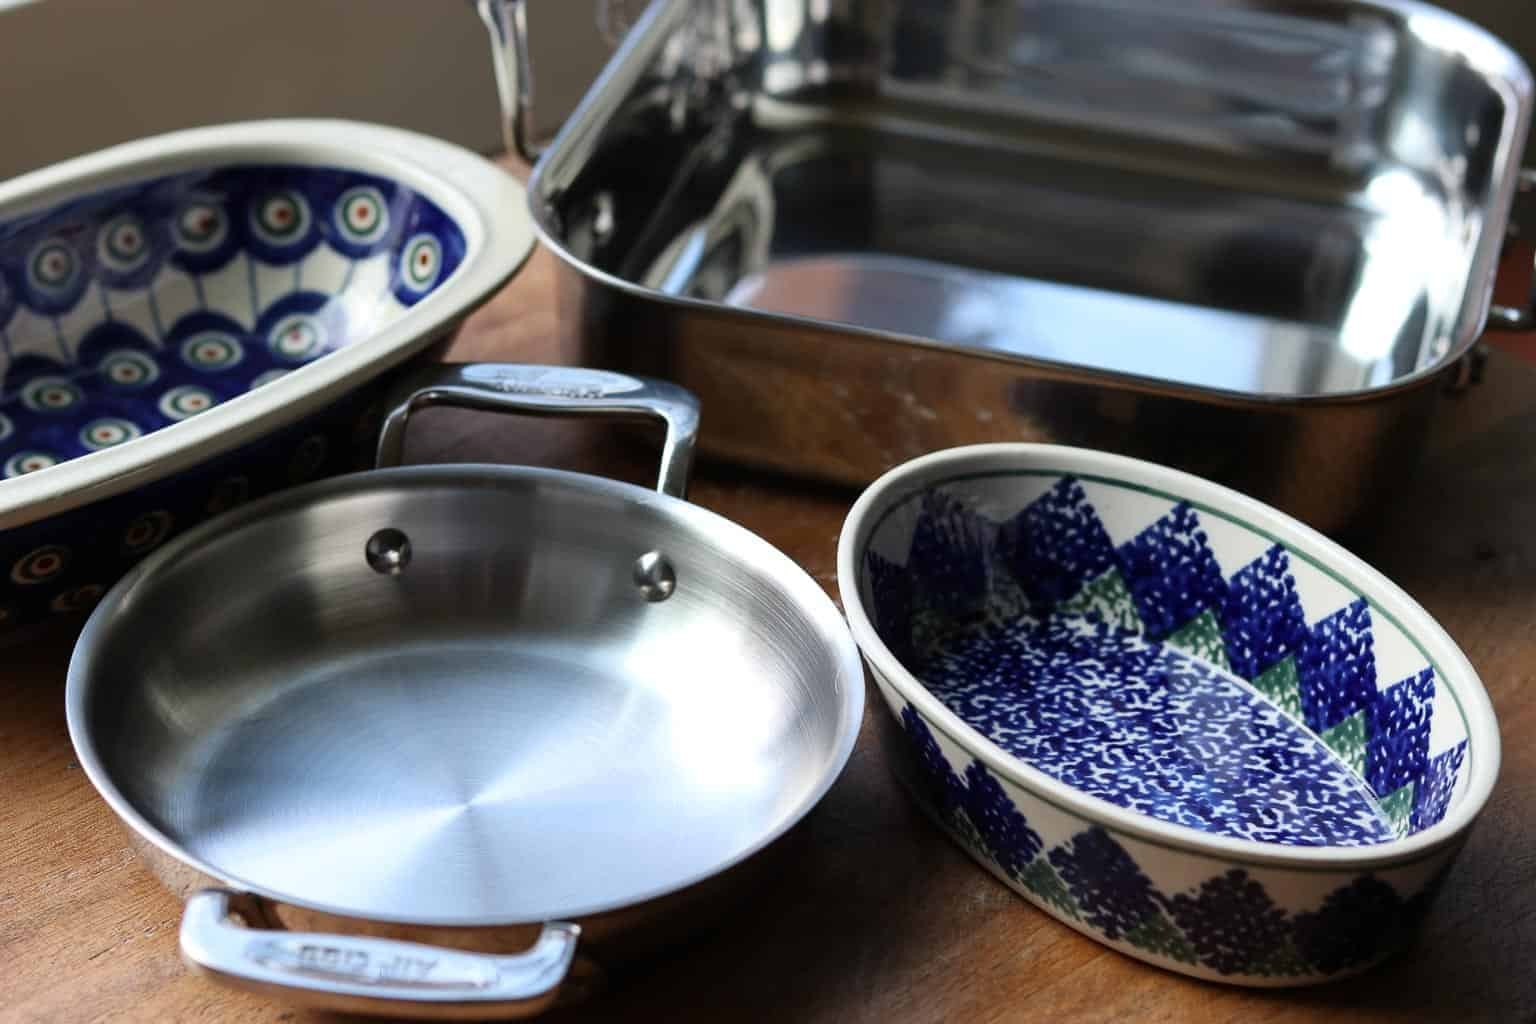 A variety of pans, Polish pottery dishes on a wooden board to use to bake the dip from Gourmet Done Skinny